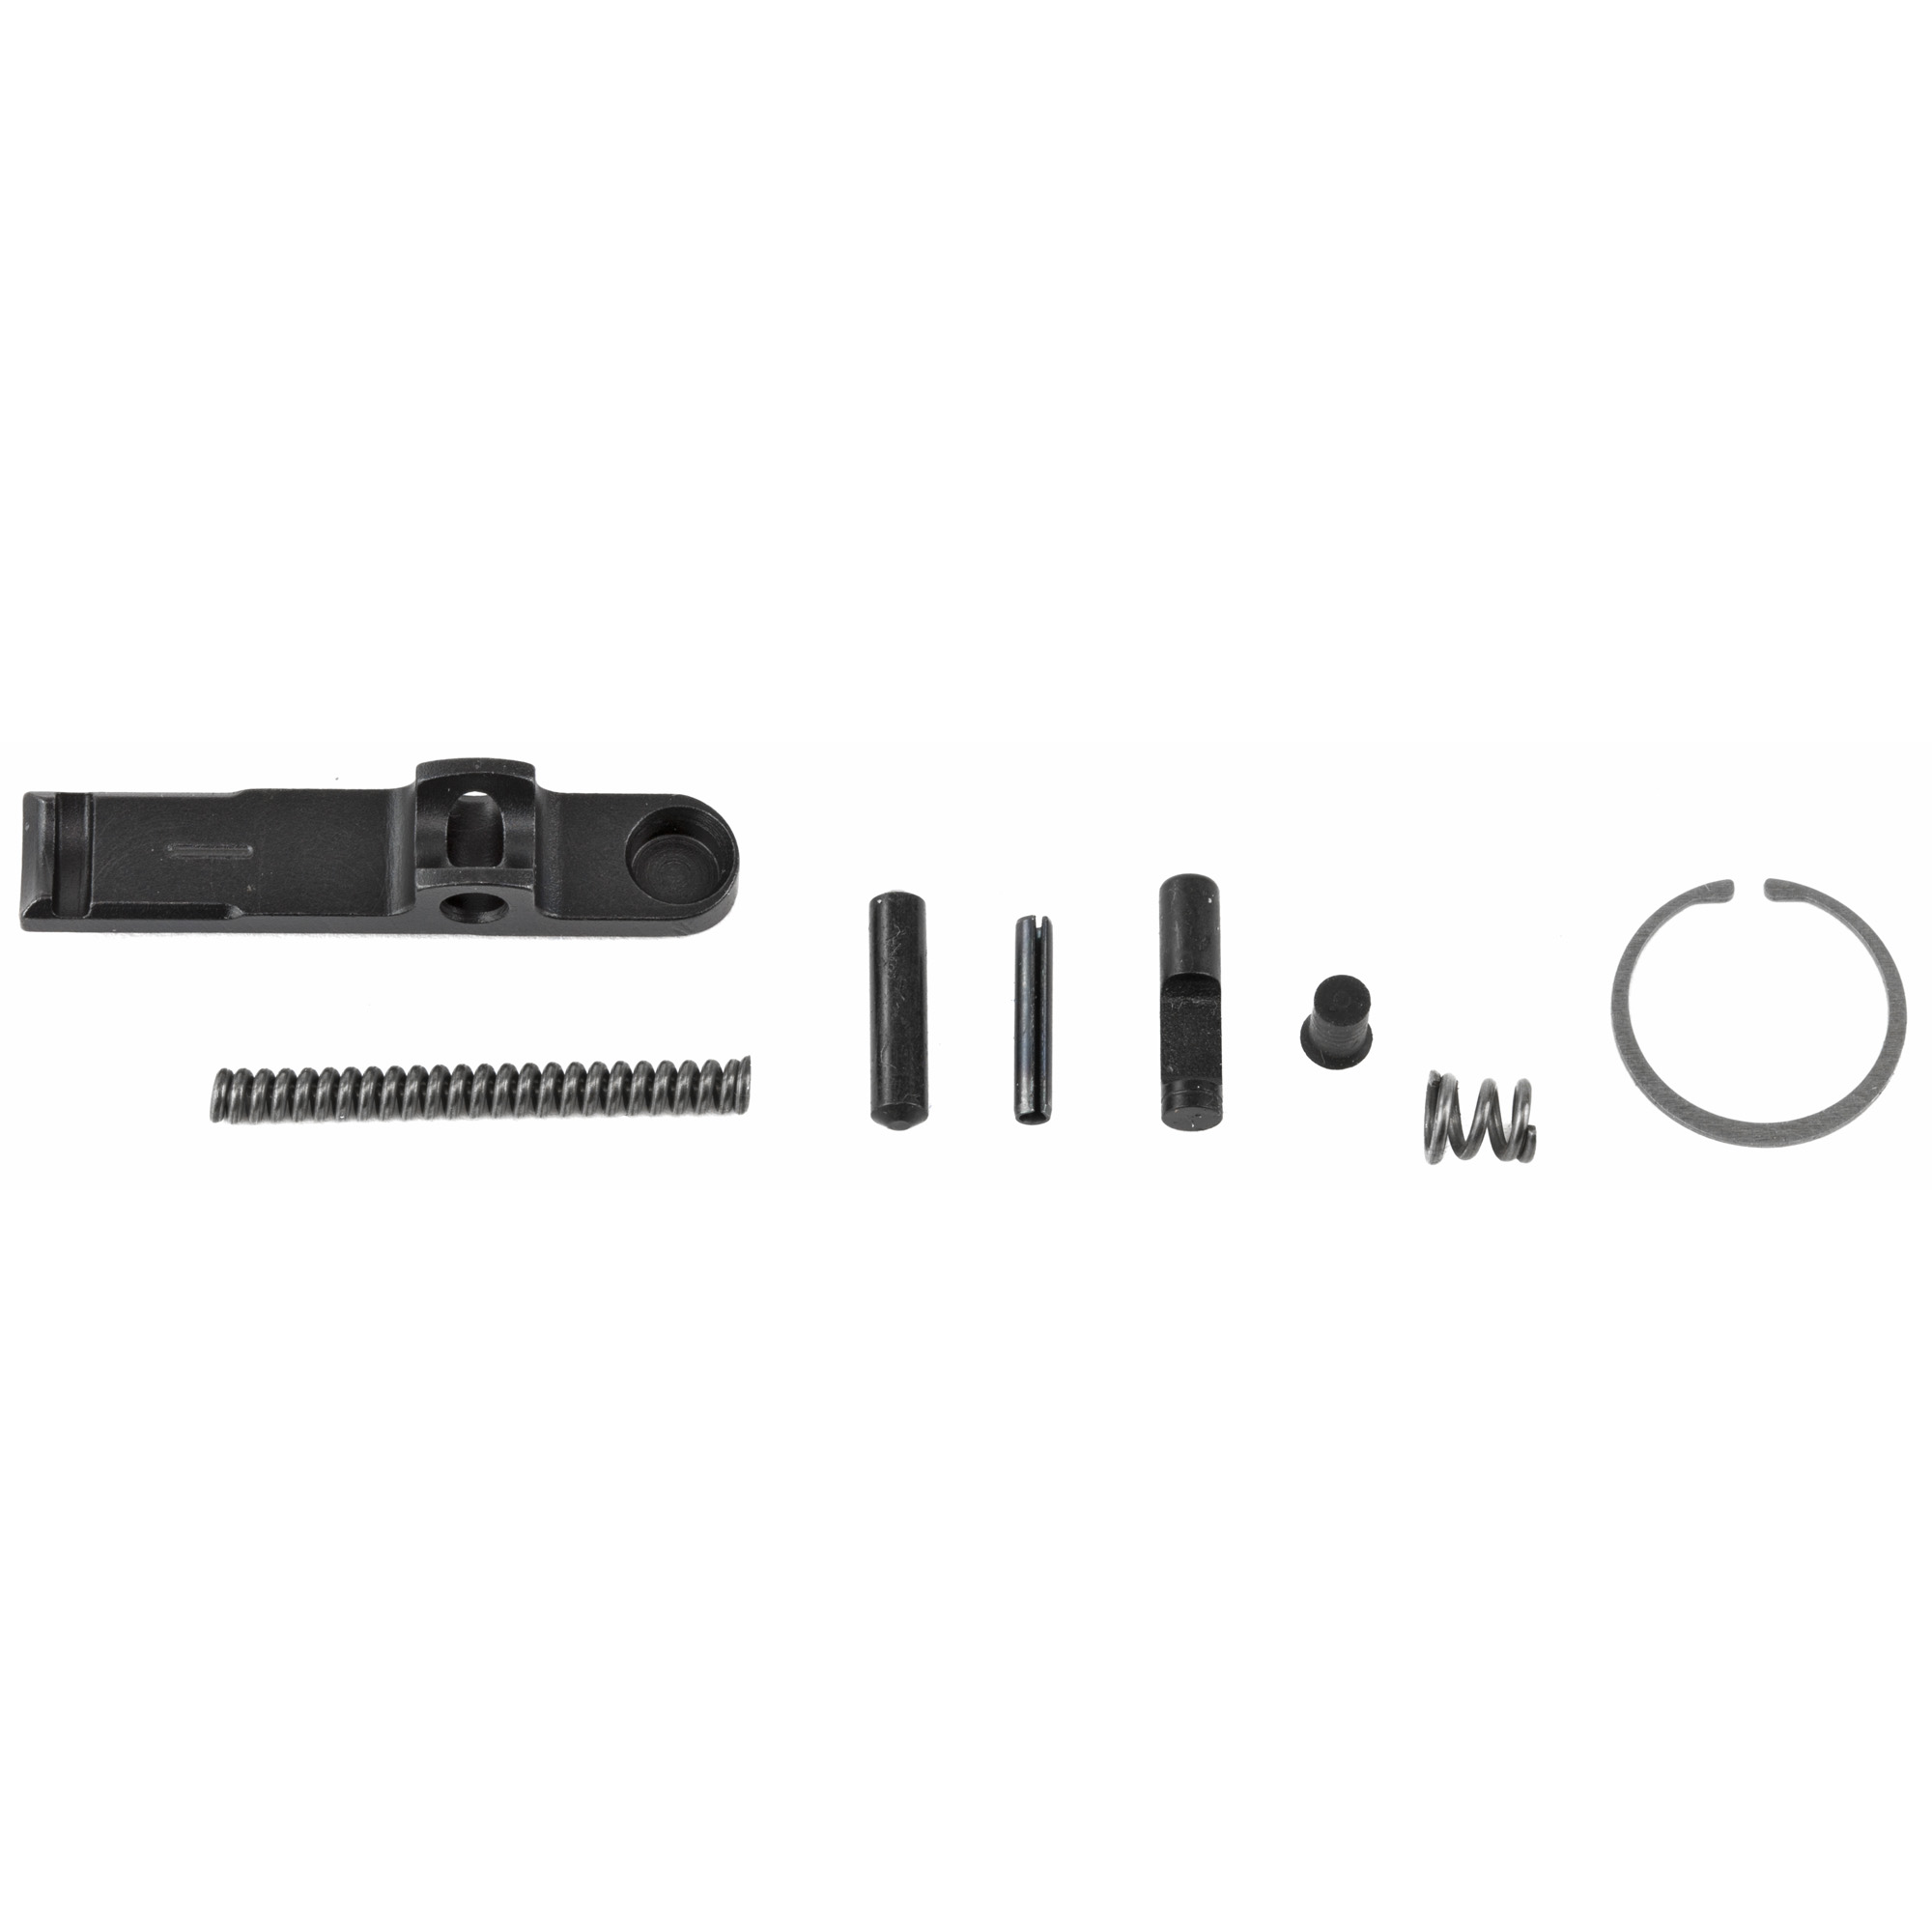 2a Bldr Series Ar15 Bcg Repair Kit